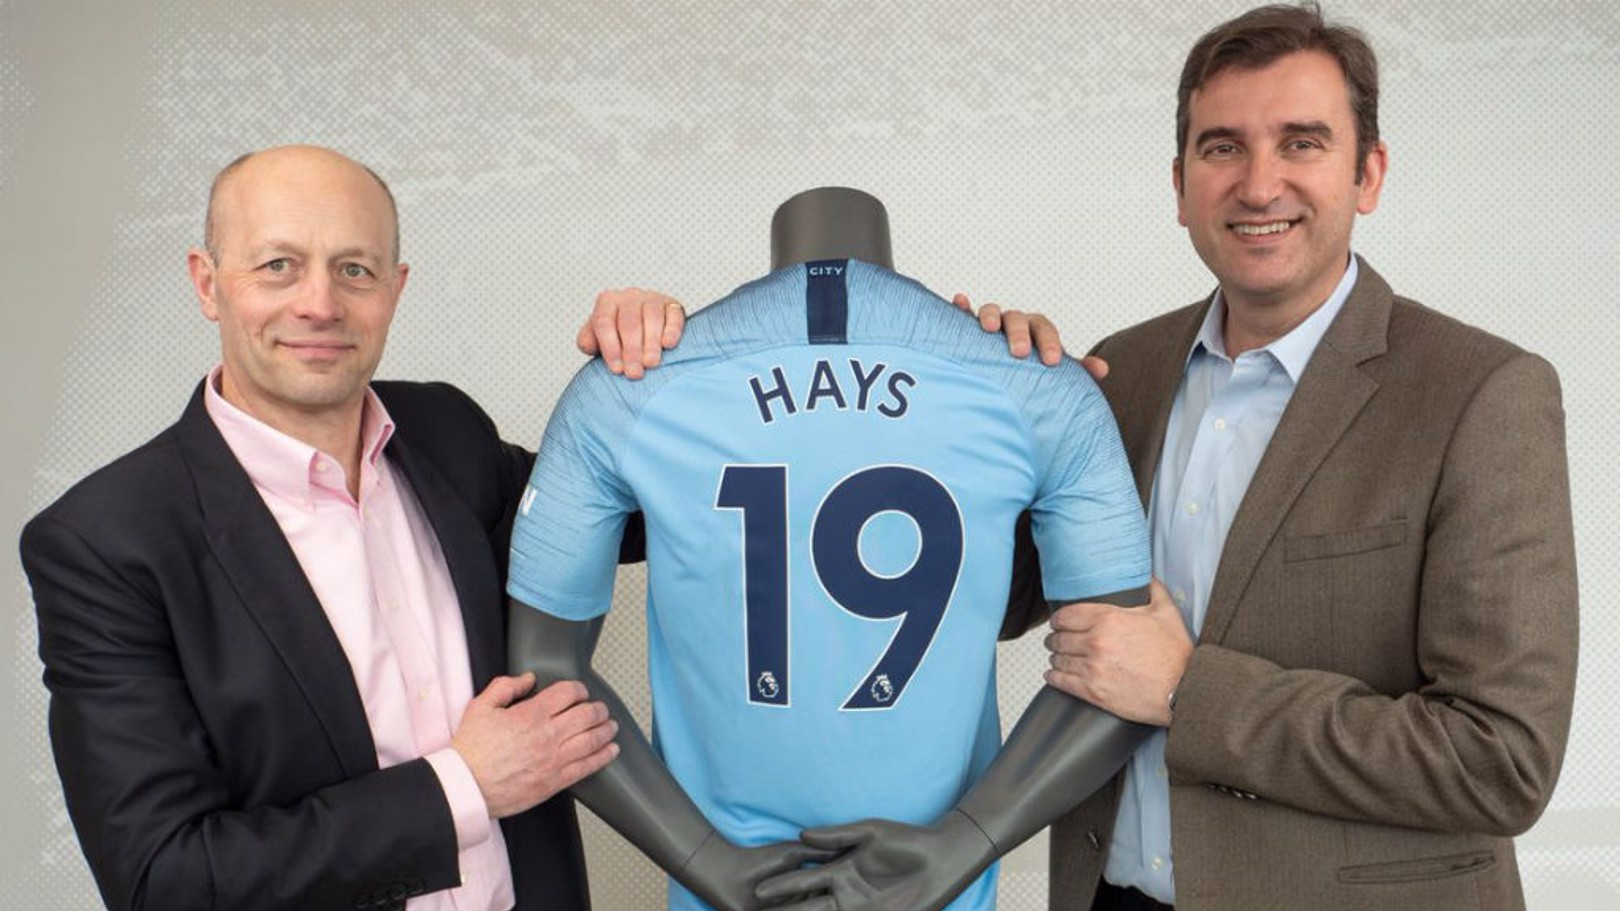 DONE DEAL: Hays and Manchester City have renewed their global partnership